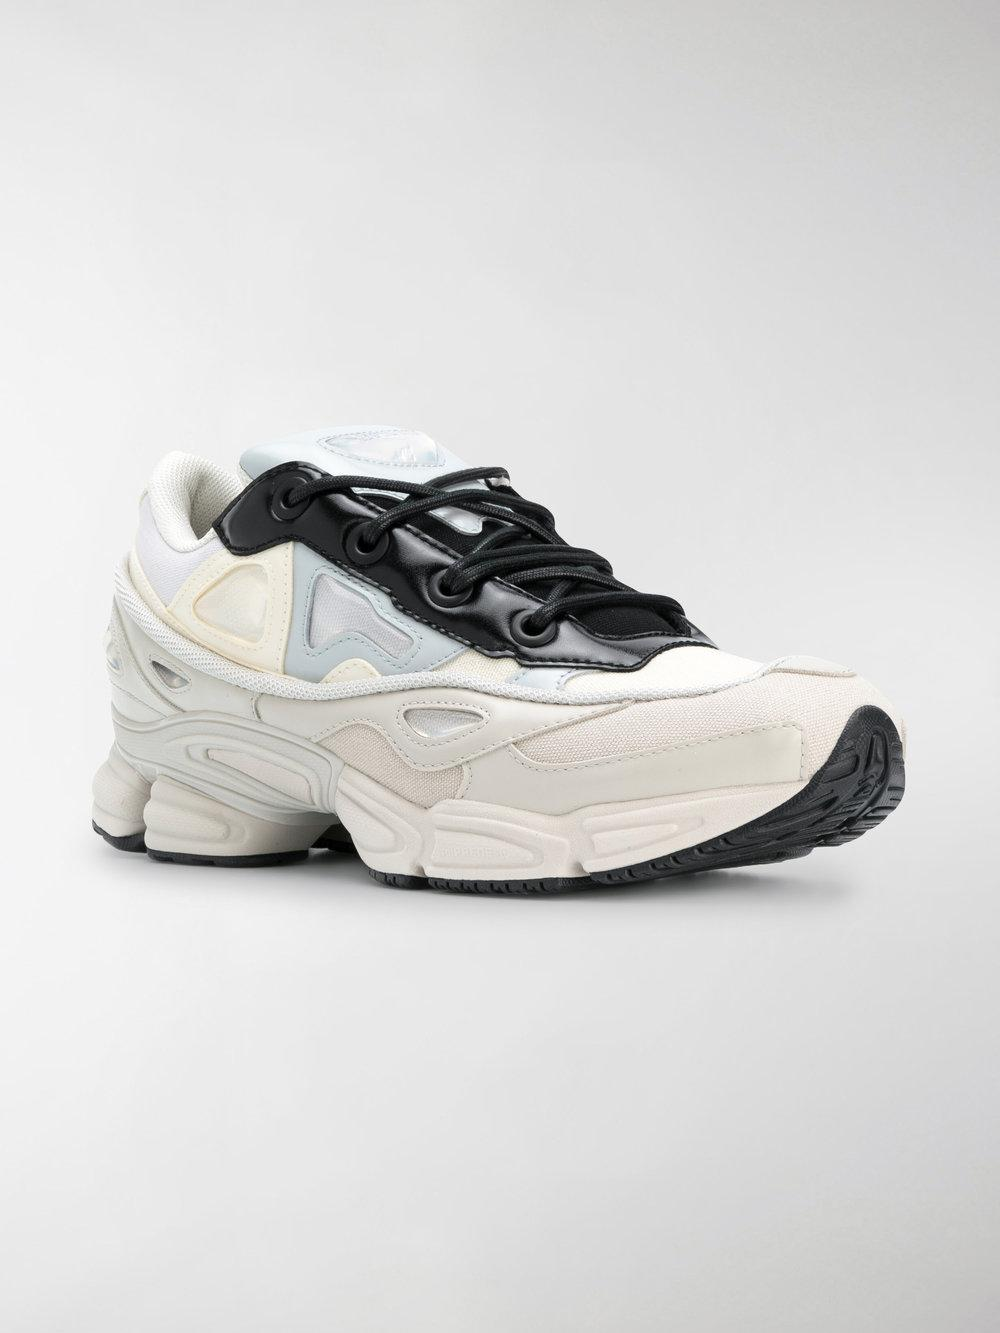 adidas By Raf Simons Leather Rs Ozweego Iii Runner Sneakers